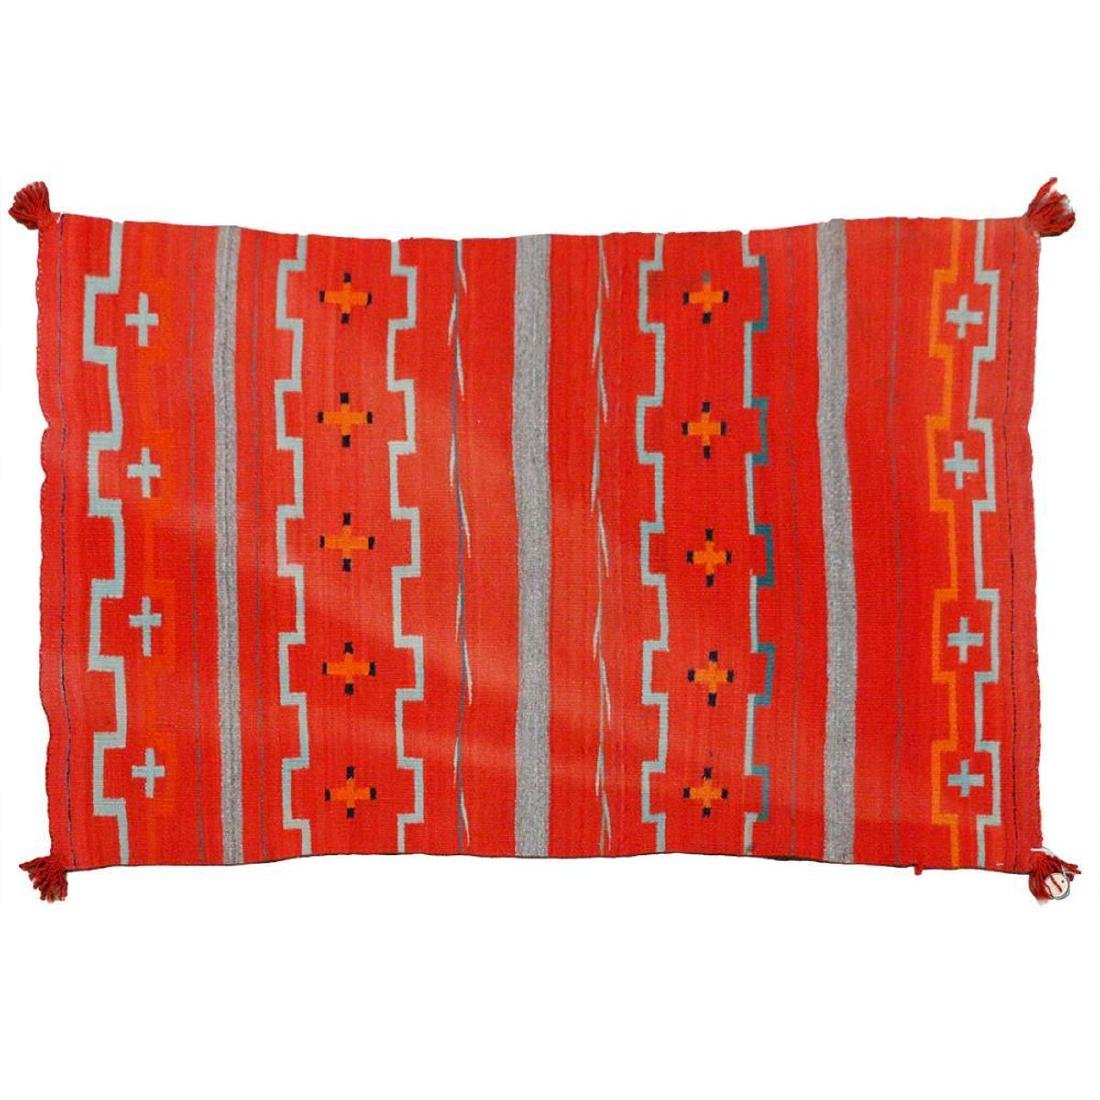 A Navajo Transitional Child's Blanket